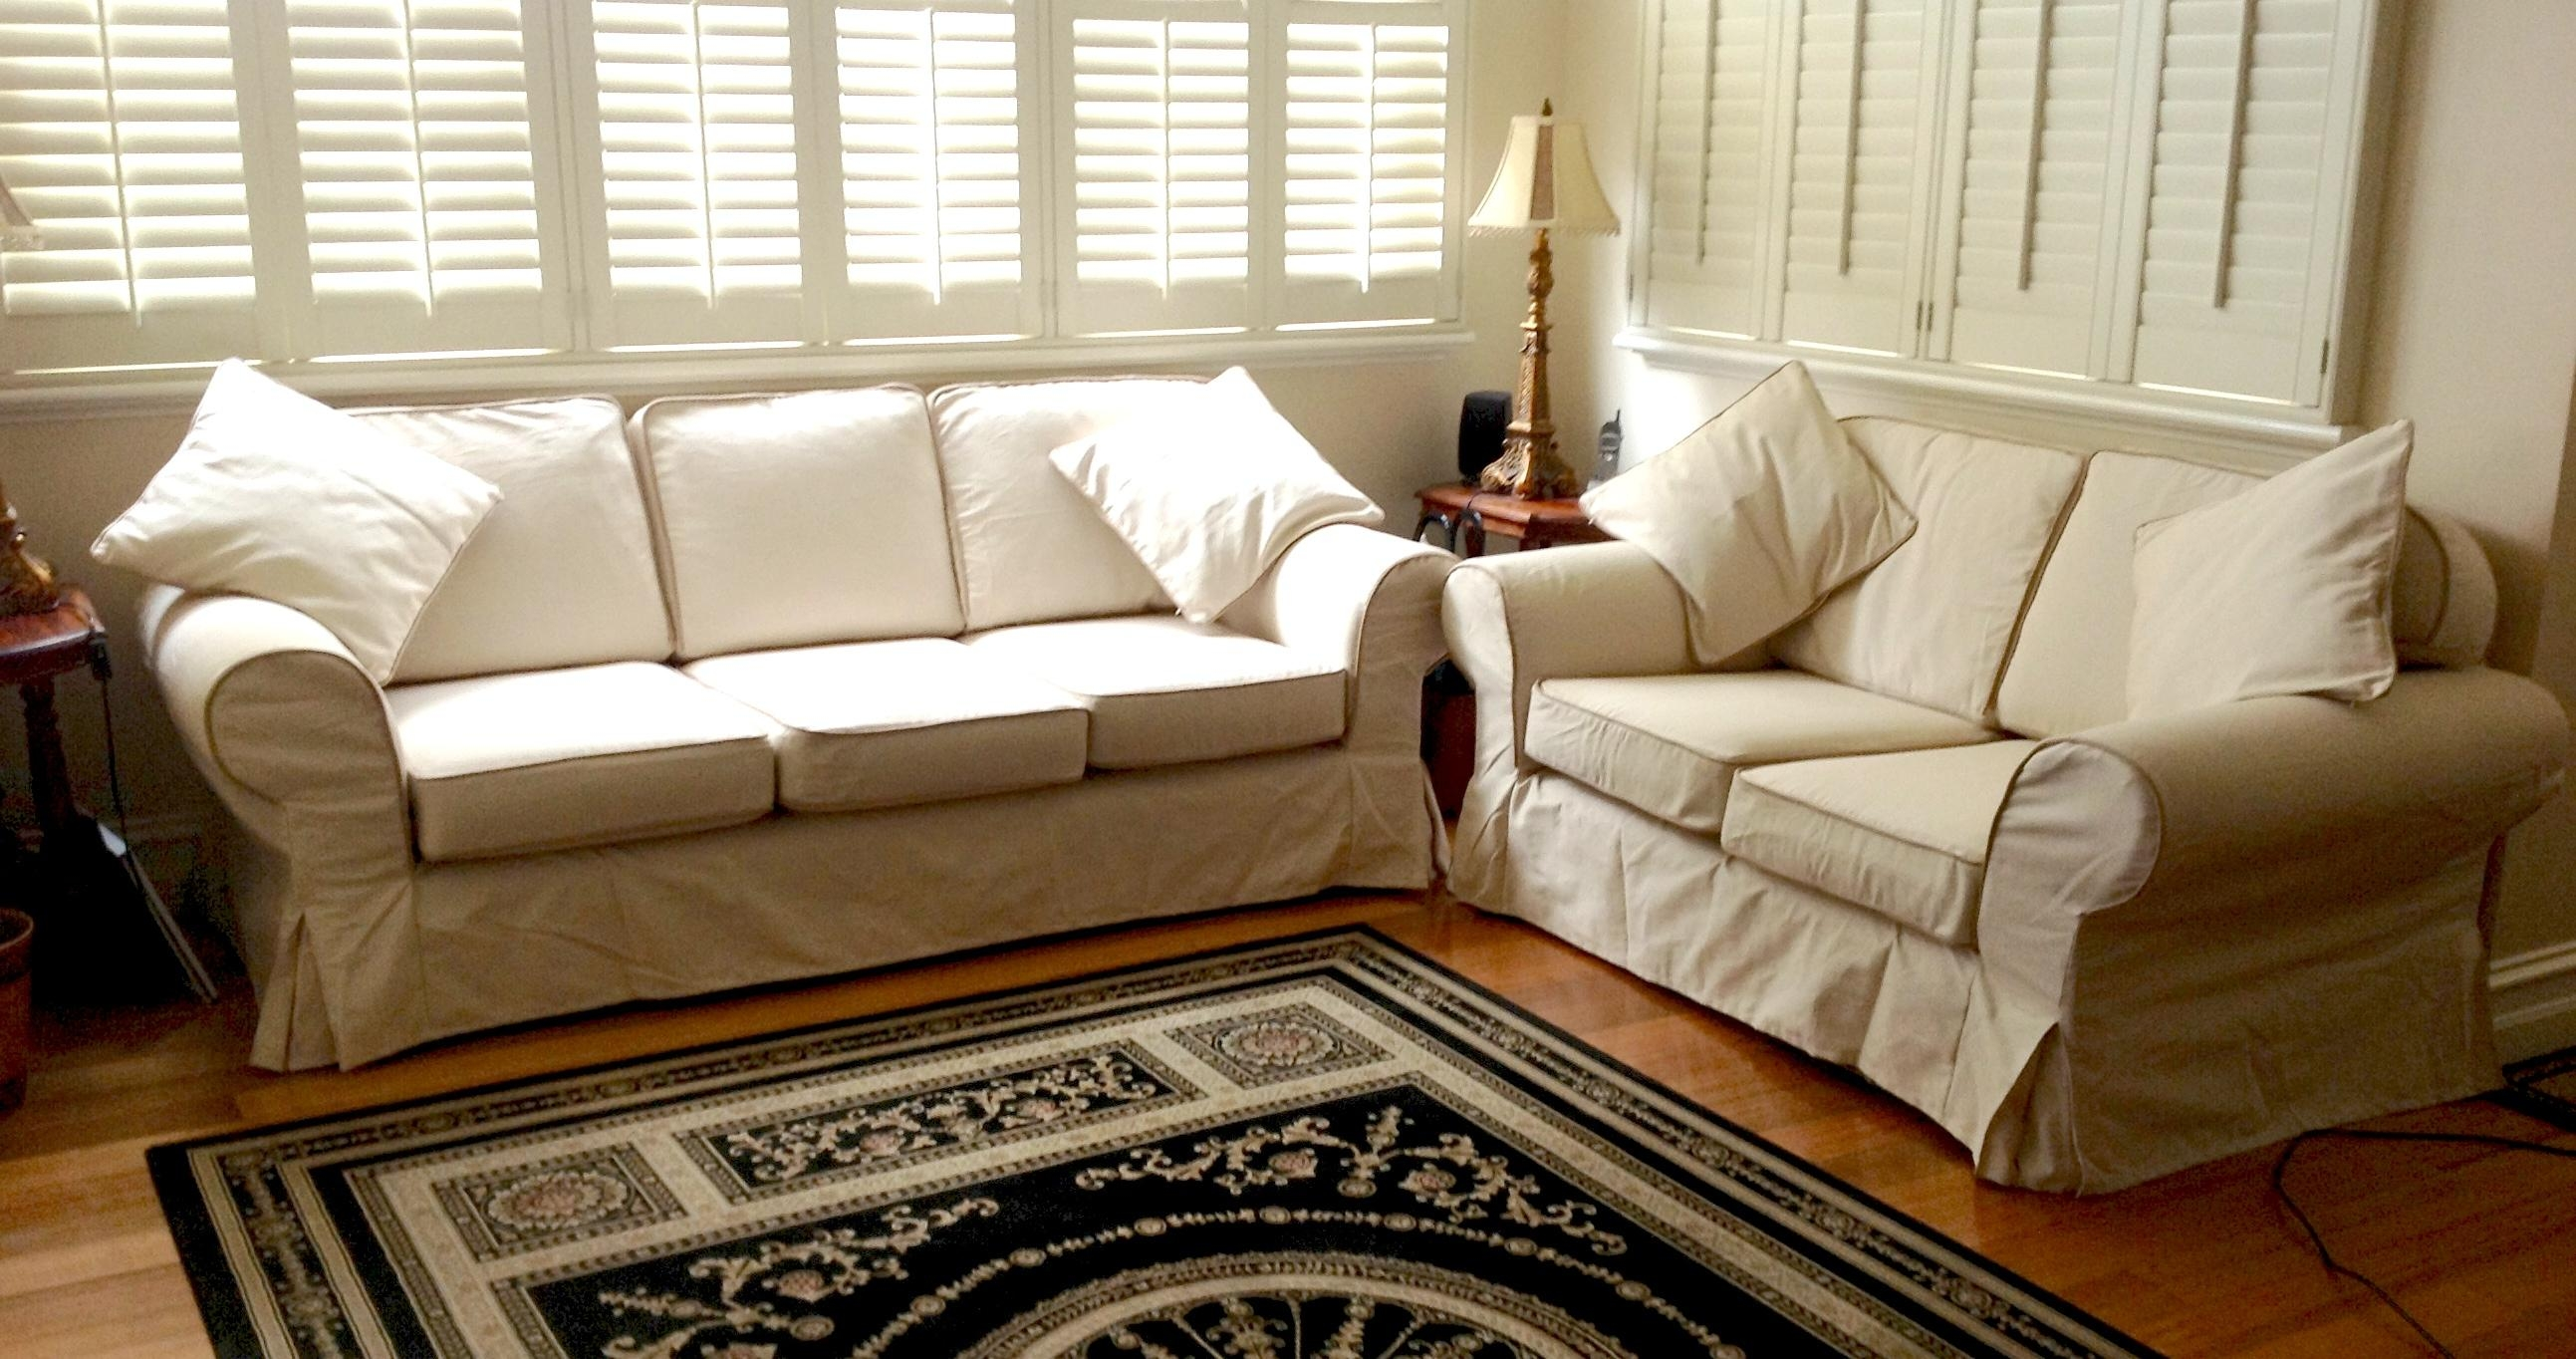 Custom Slipcovers And Couch Cover For Any Sofa Online Throughout Sofa And Loveseat Covers (View 5 of 20)